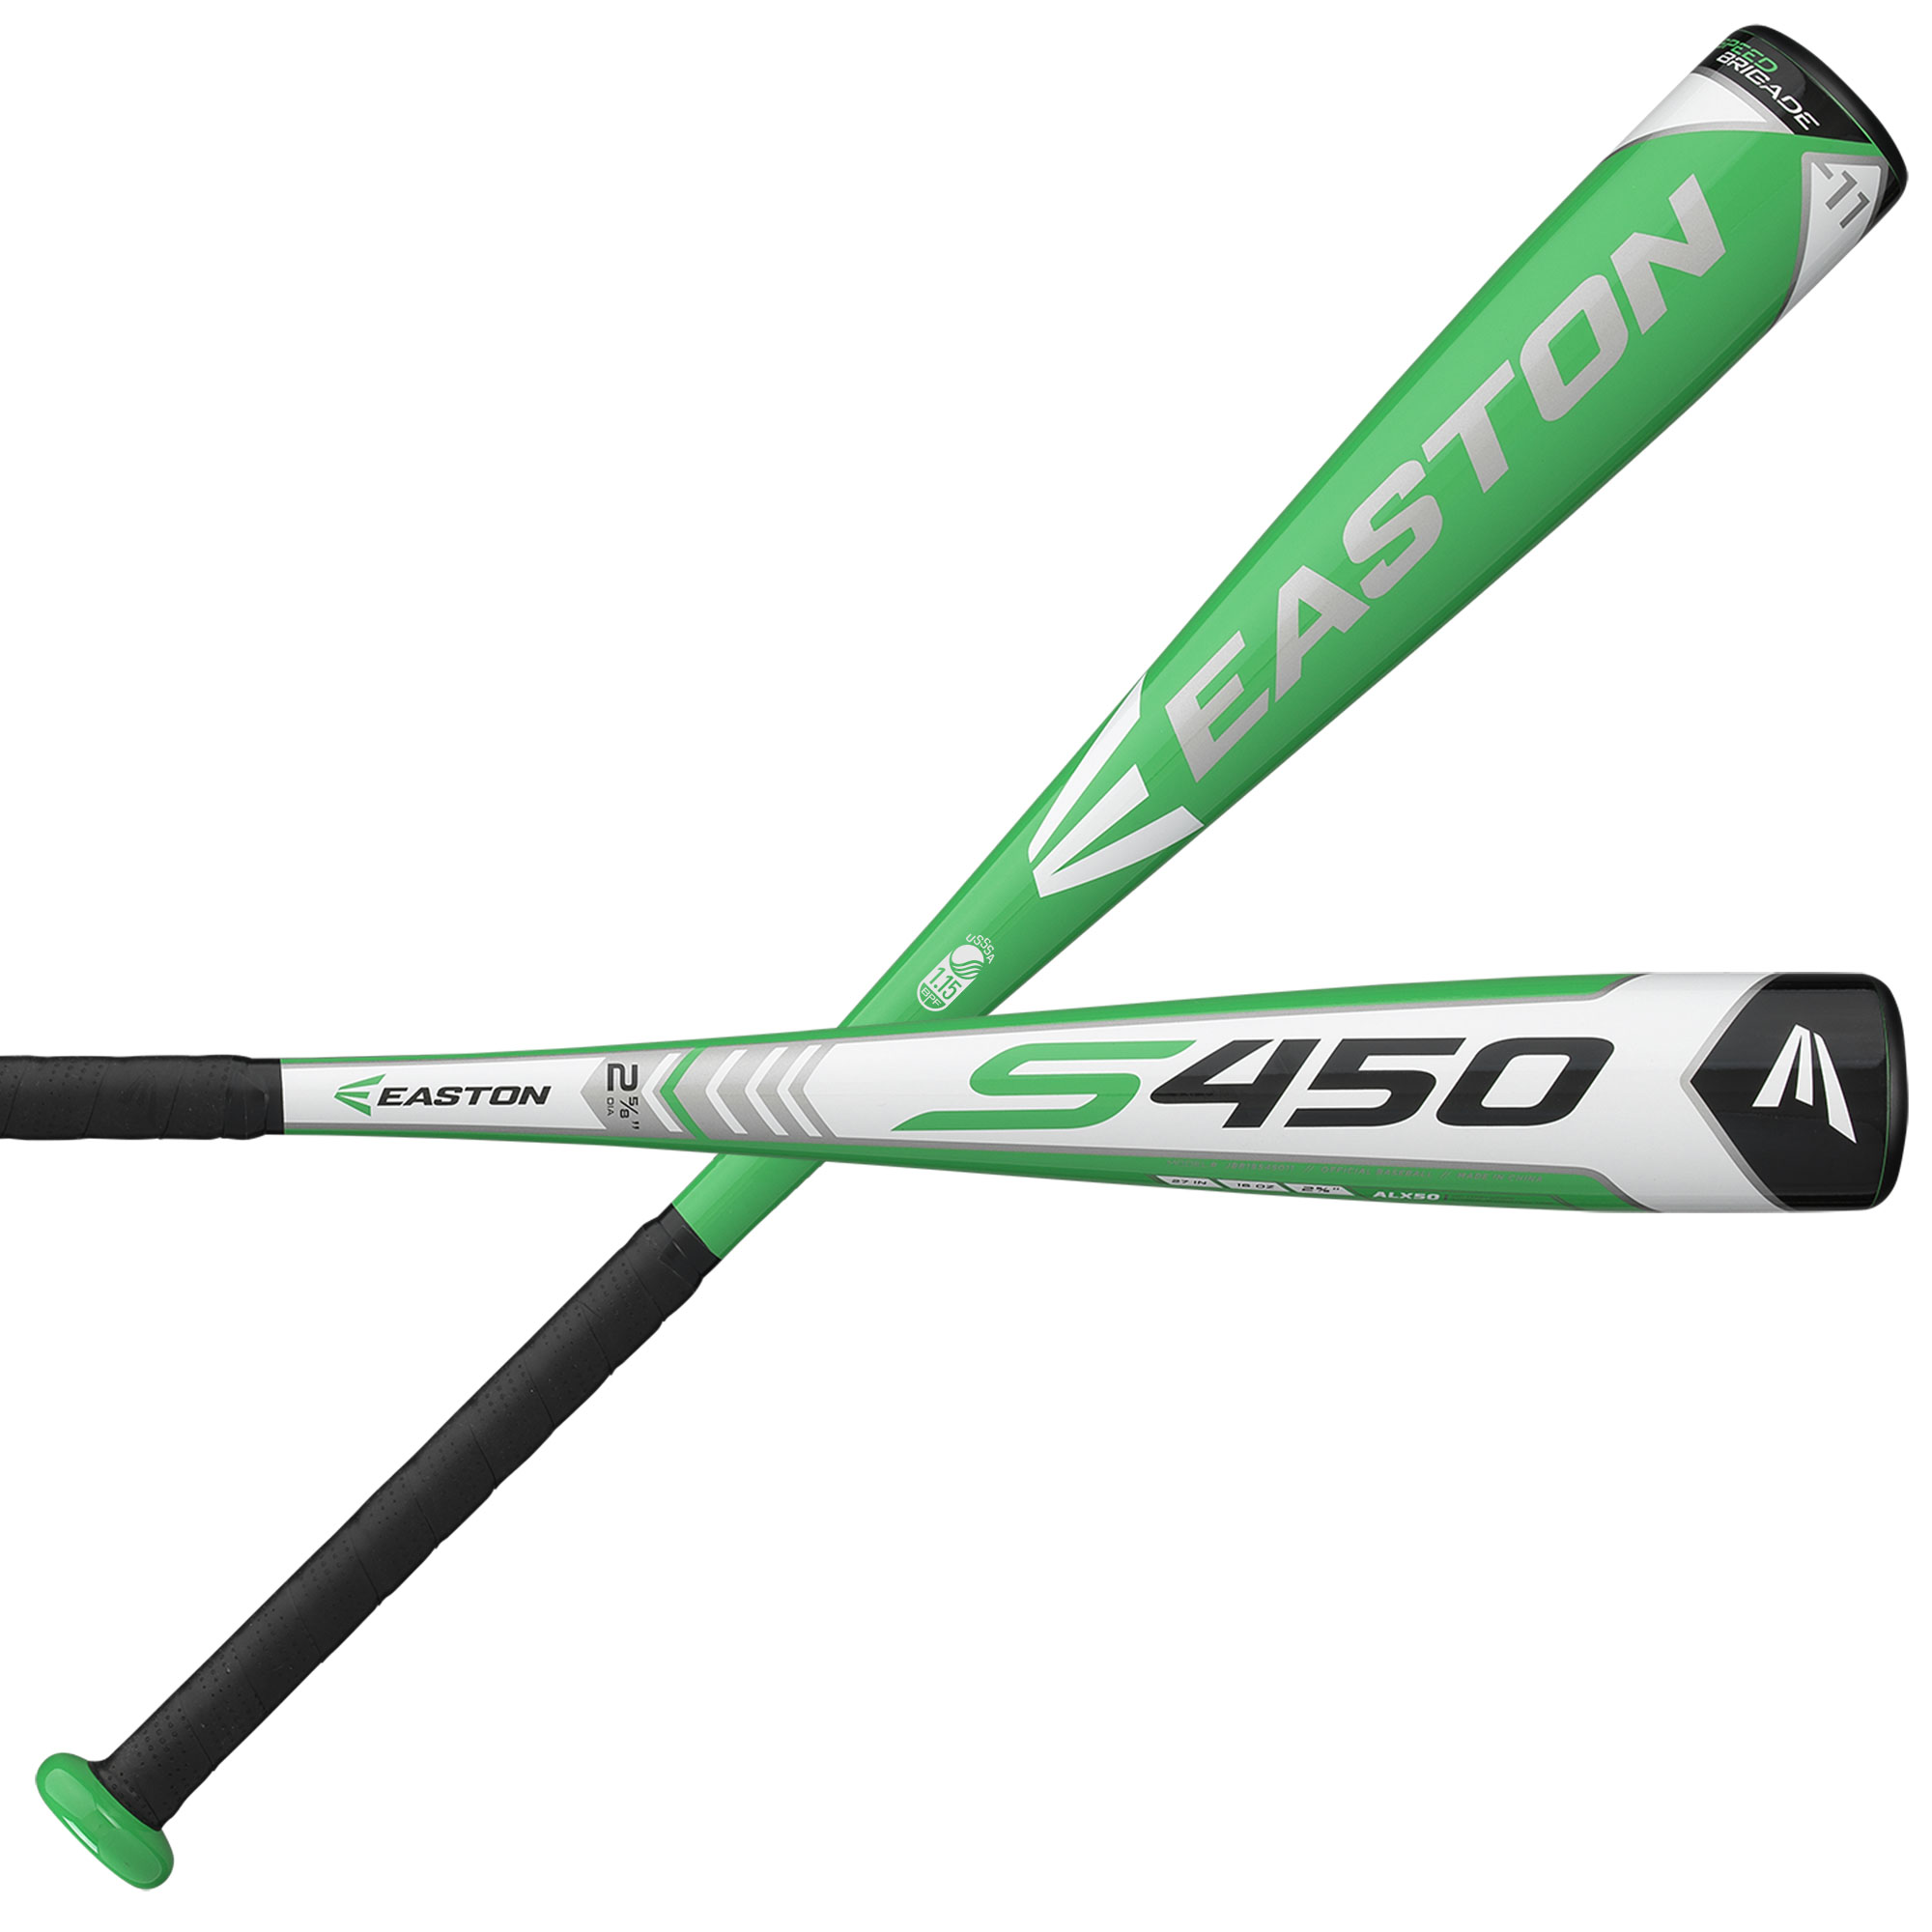 Easton S450 (-11) JBB18S45011 Jr. Big Barrel Baseball Bat